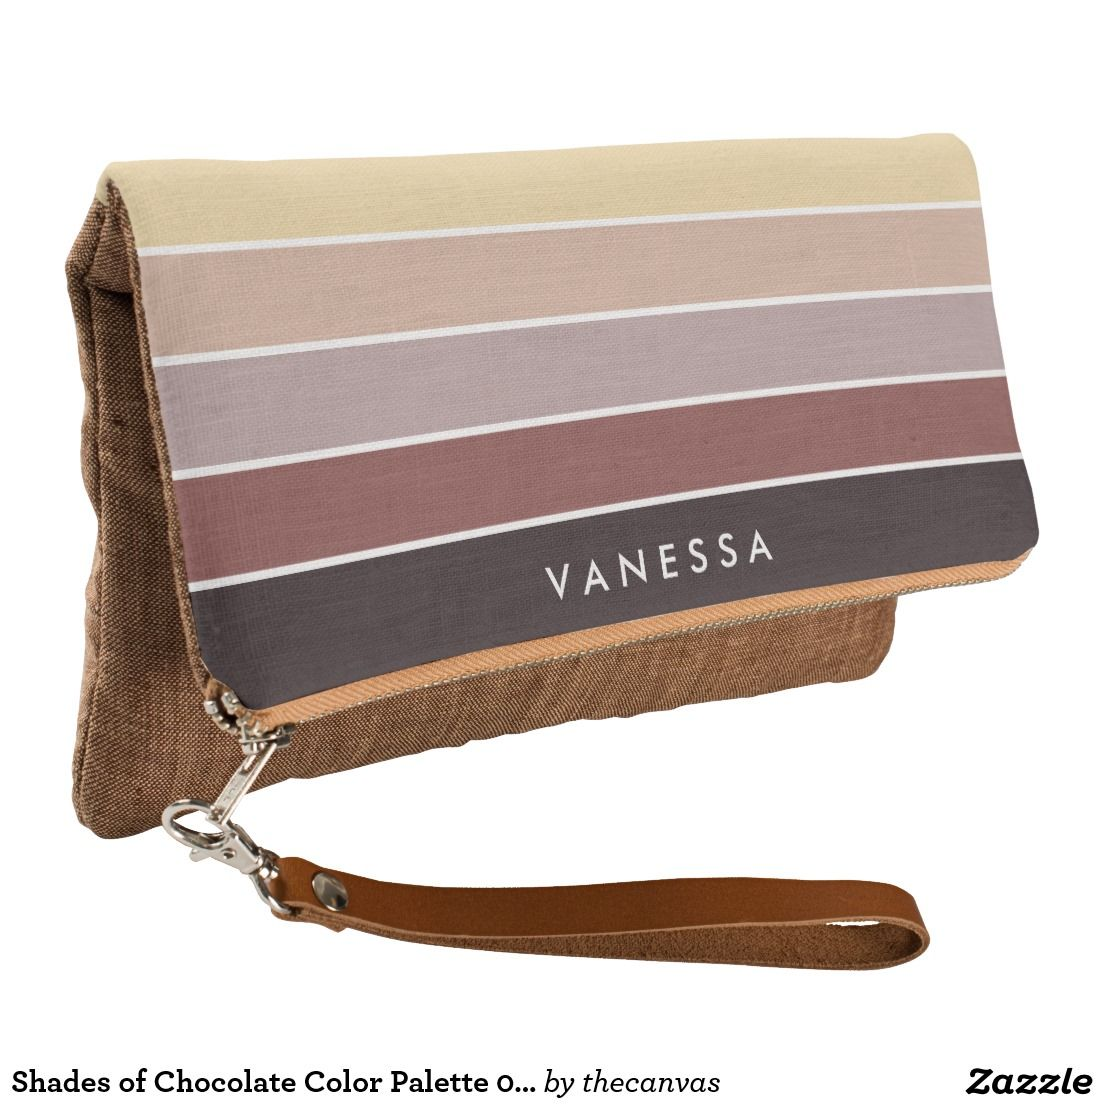 Shades of Chocolate Color Palette 001 Clutch